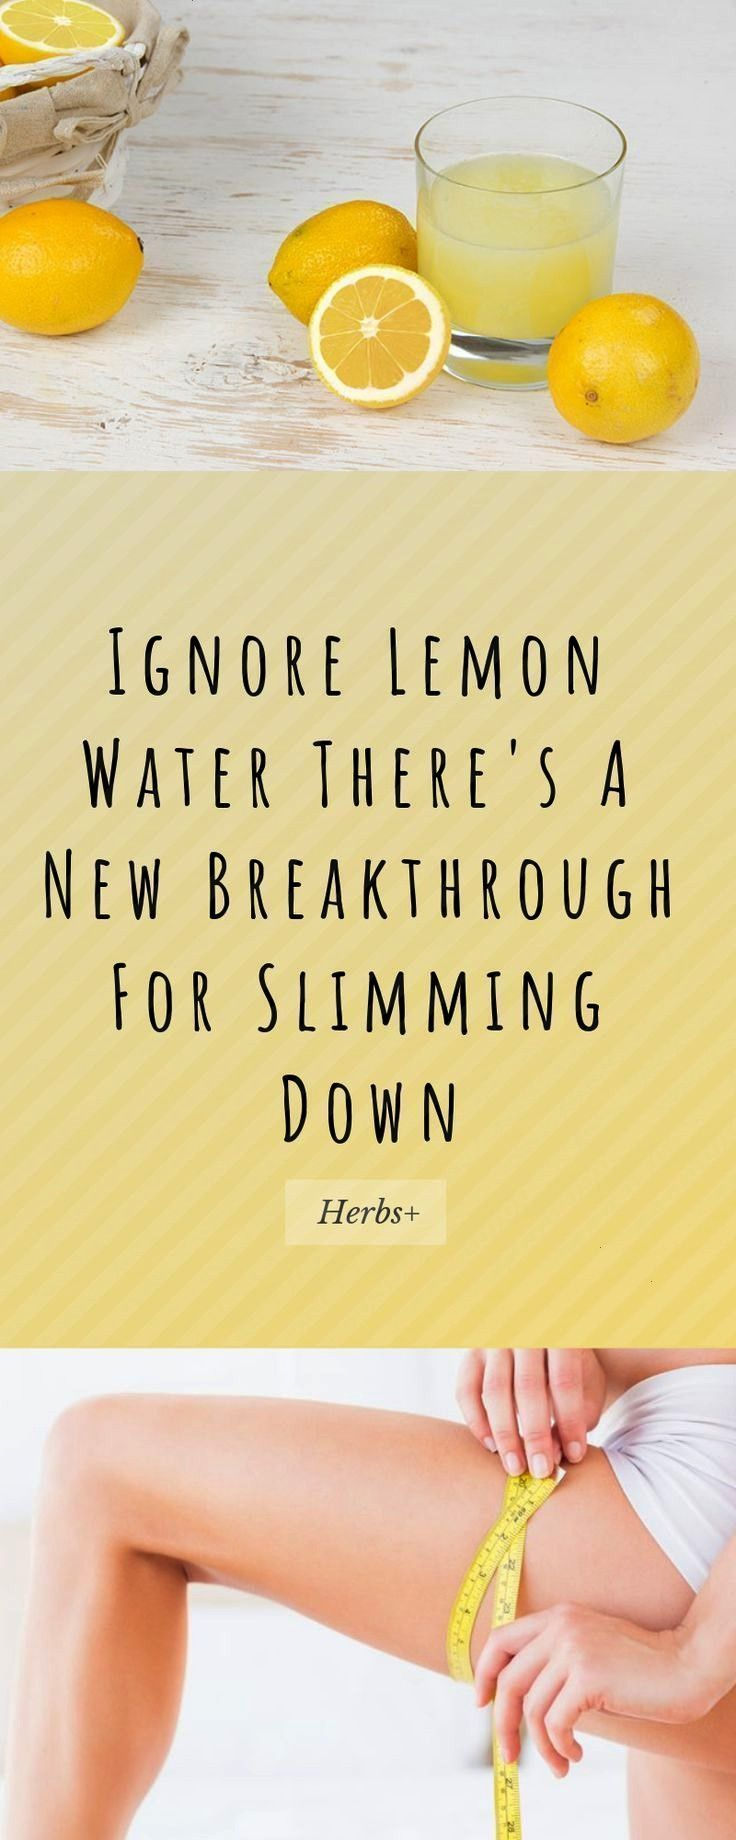 Lemon Water There's A New Breakthrough For Slimming Down   - Weight Los...- Ignore Lemon Water Th